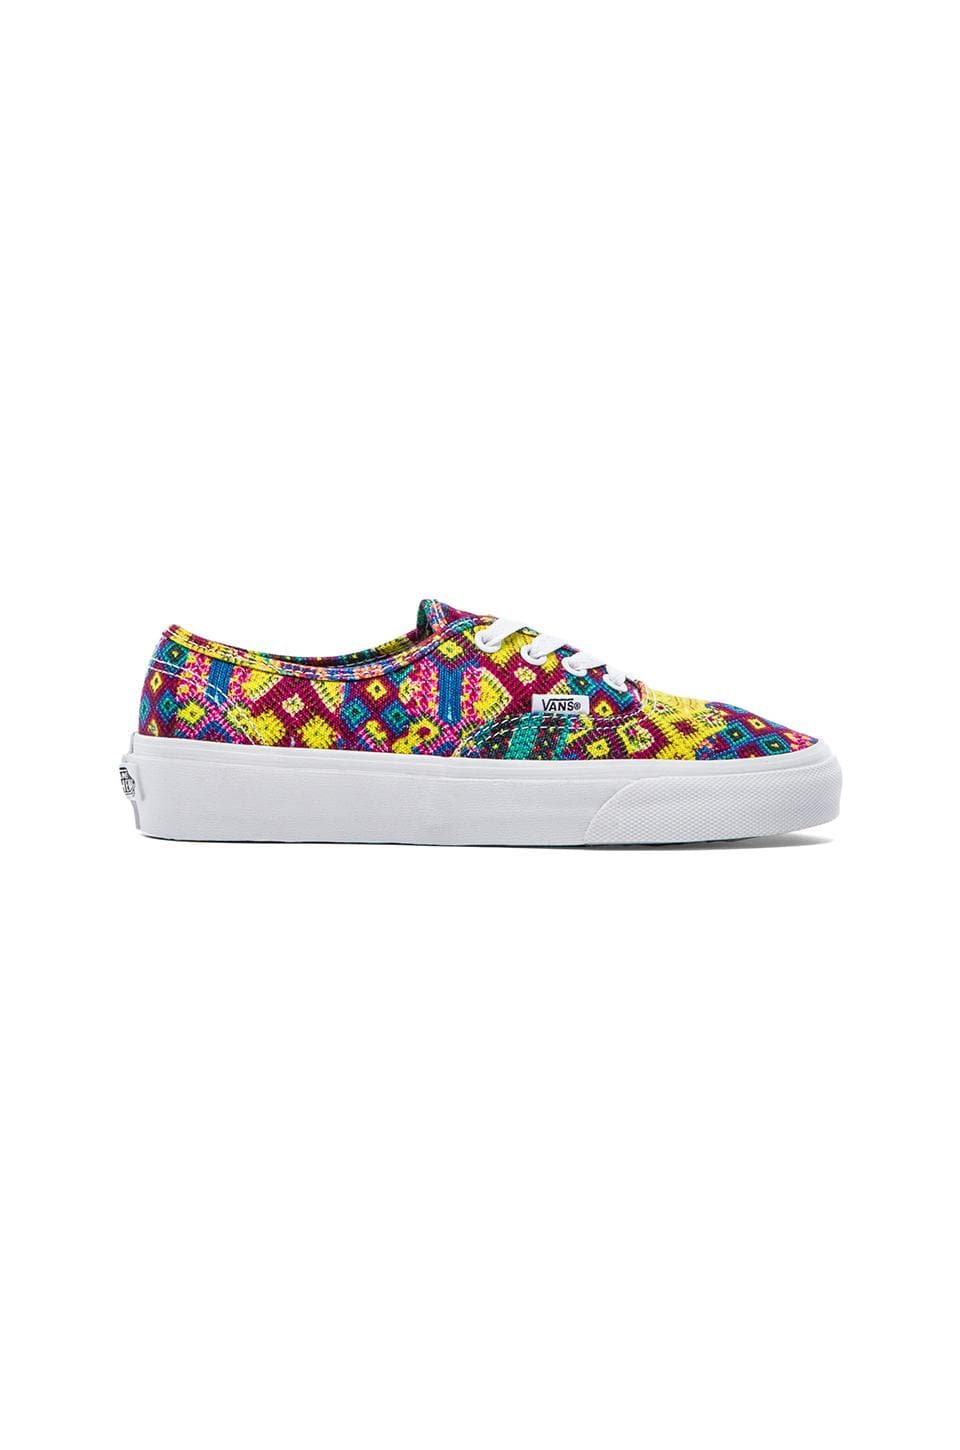 Vans Authentic Sneaker in Multi & True White